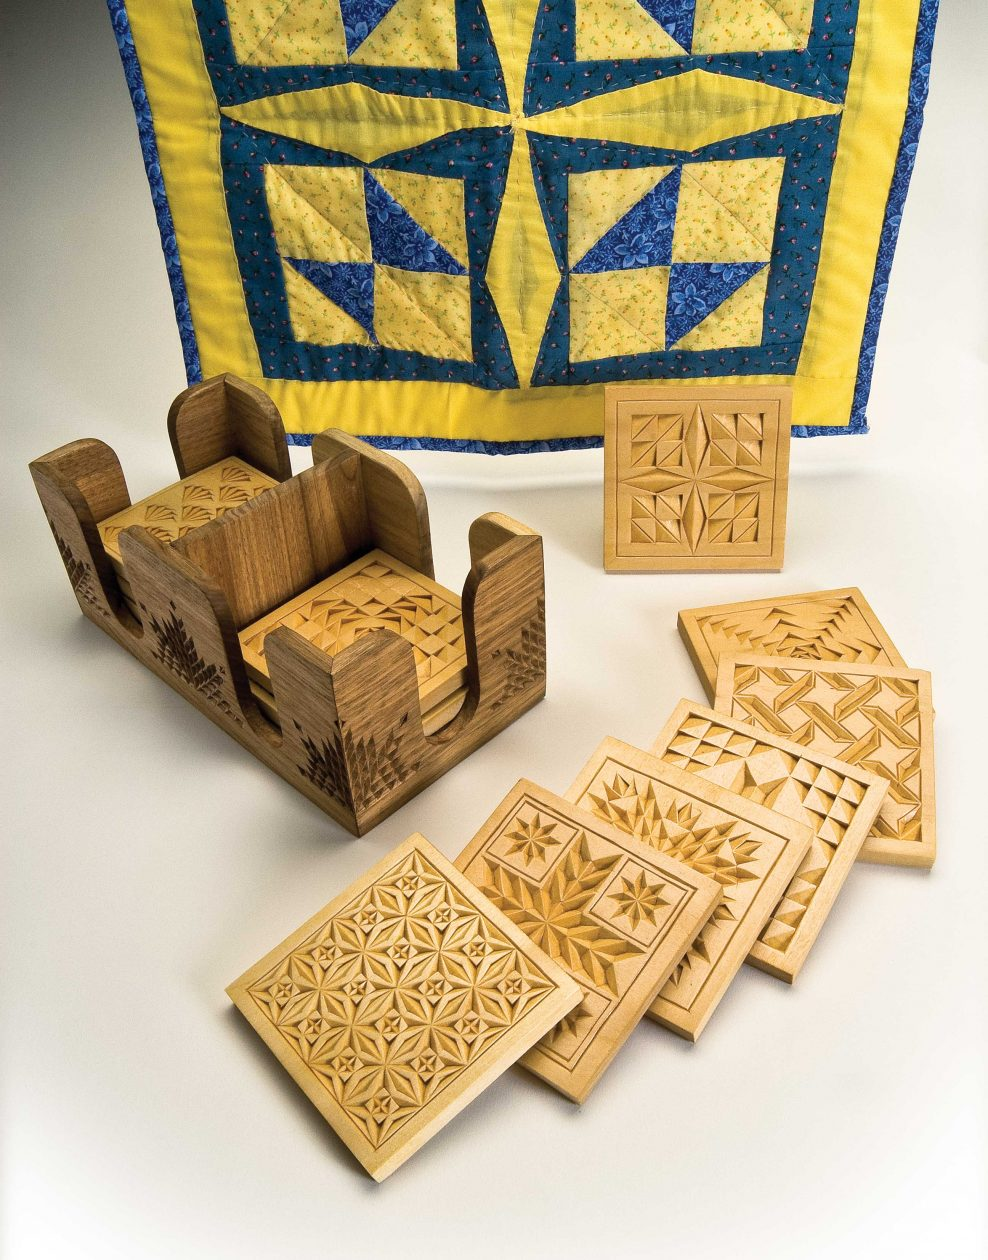 Quilt Patterns Inspire Chip-carved Coasters